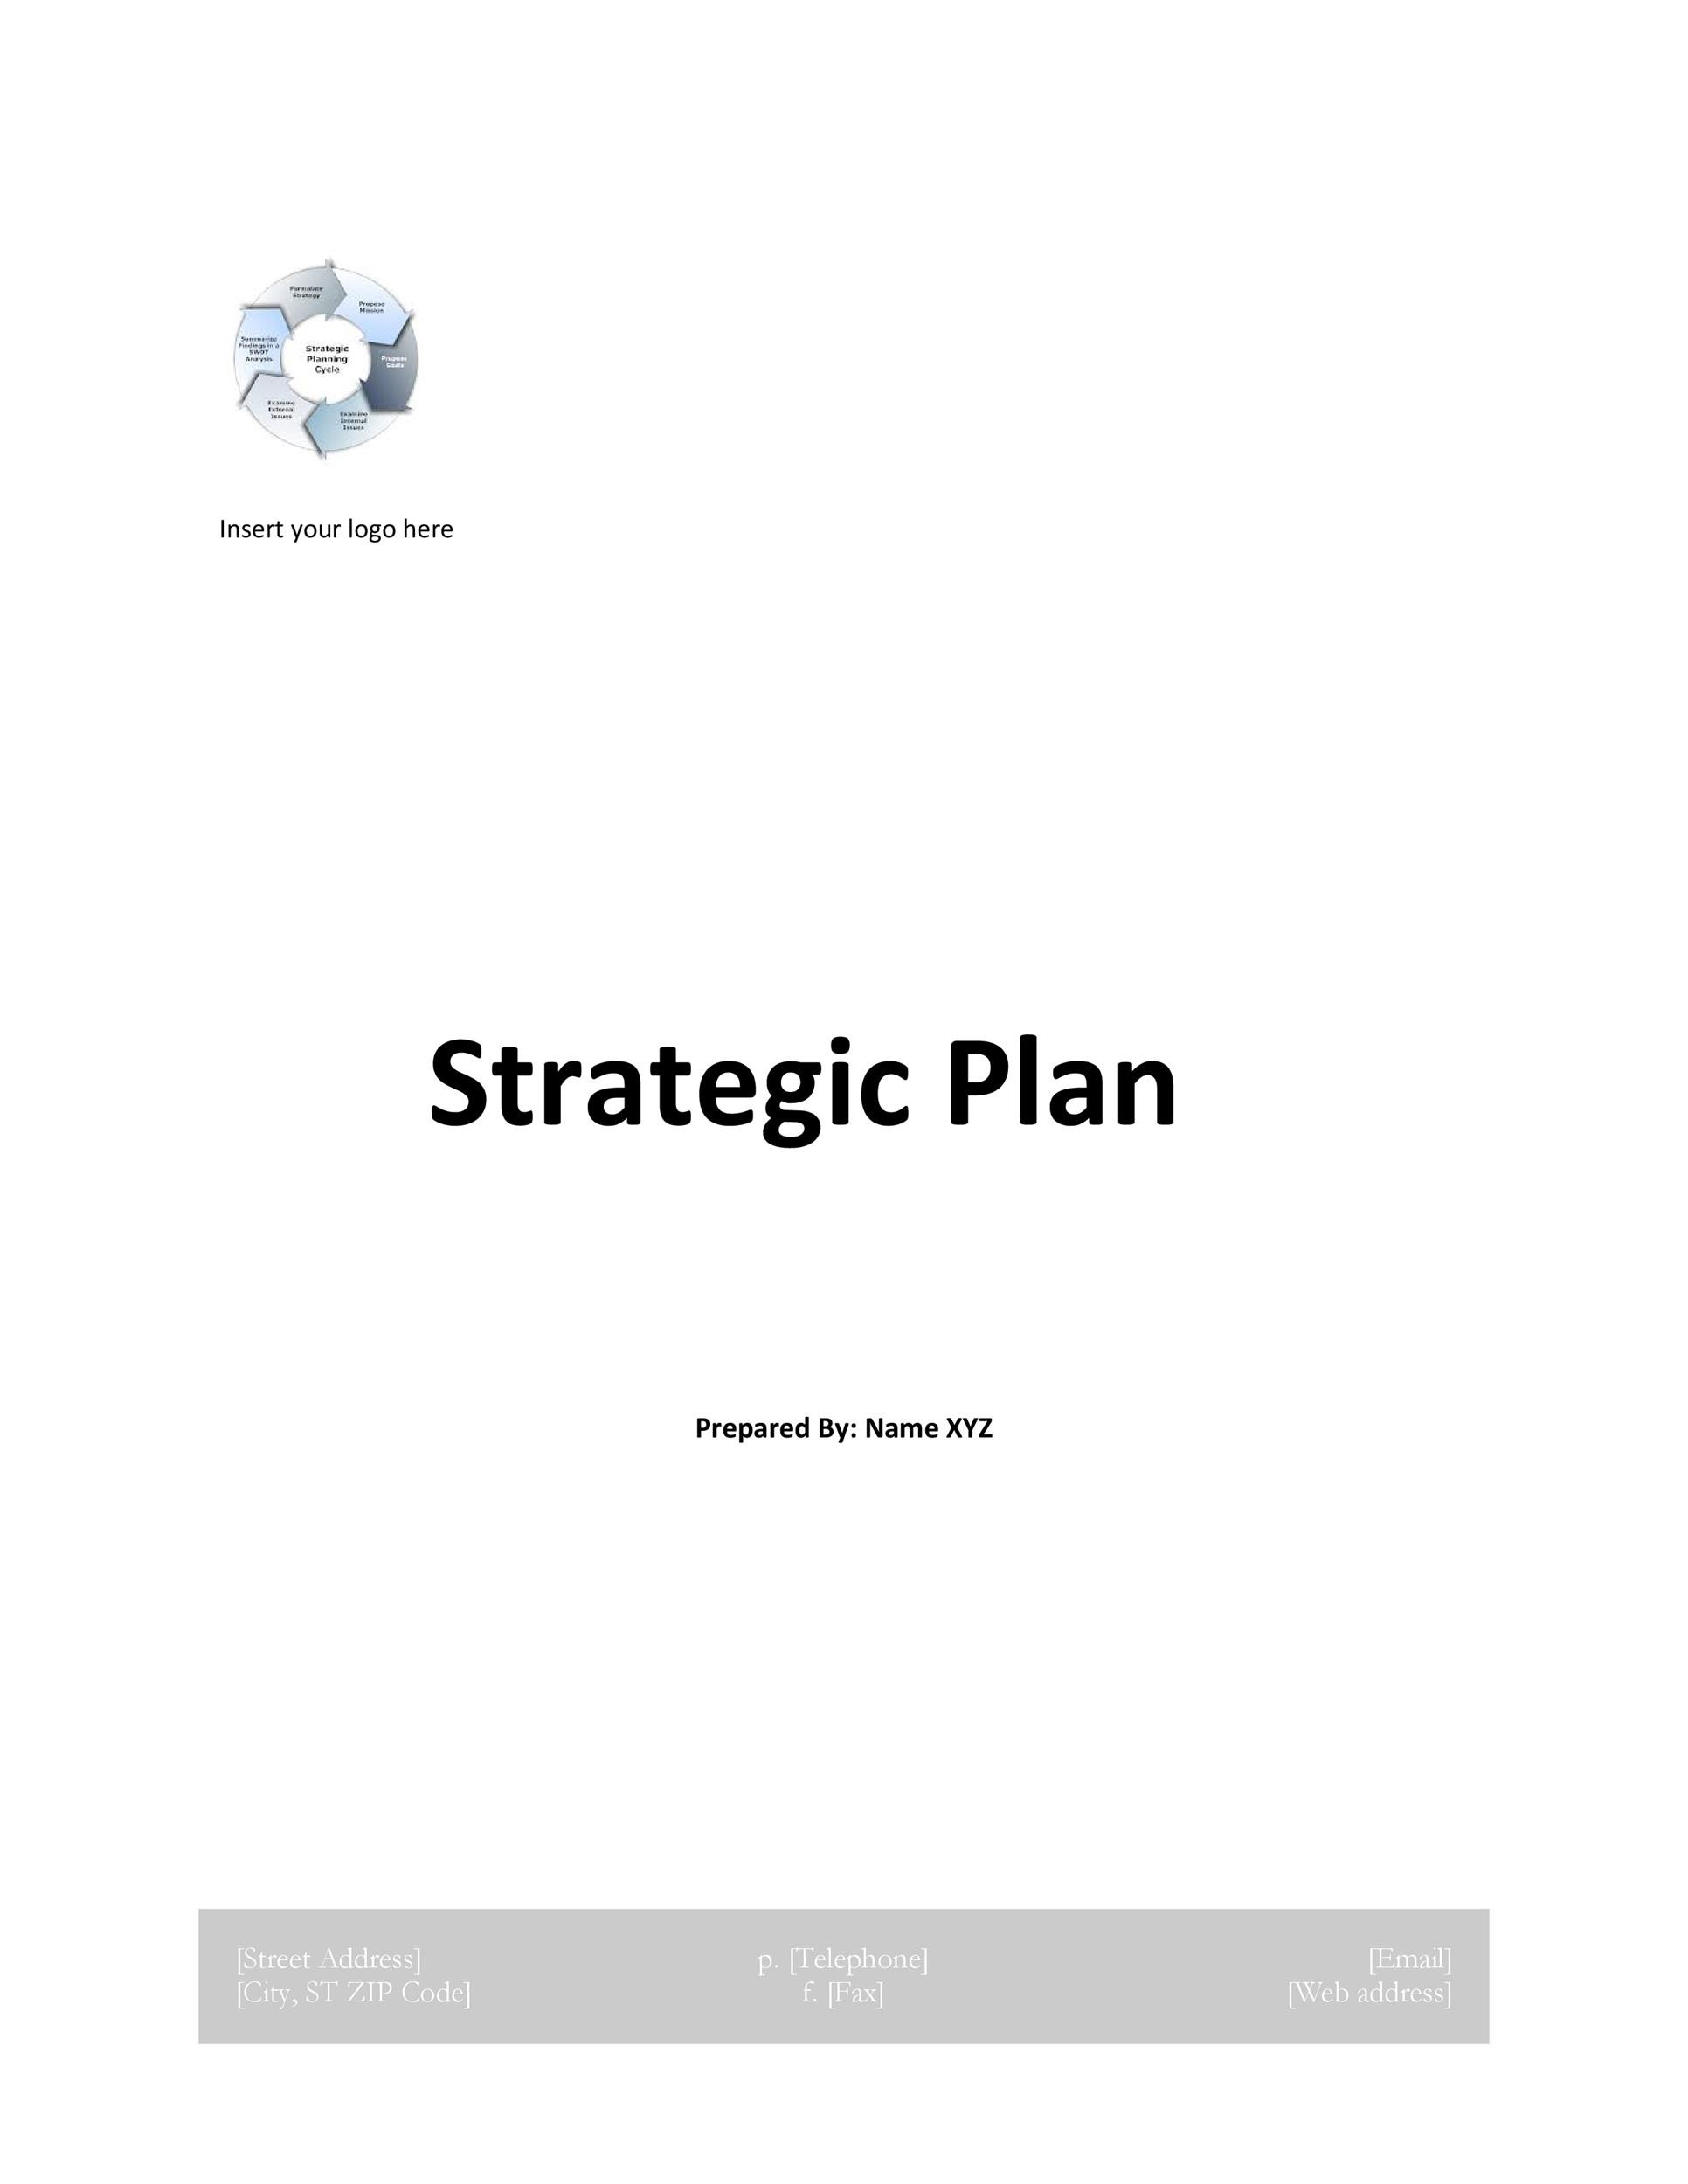 Strategic Plan Template 03